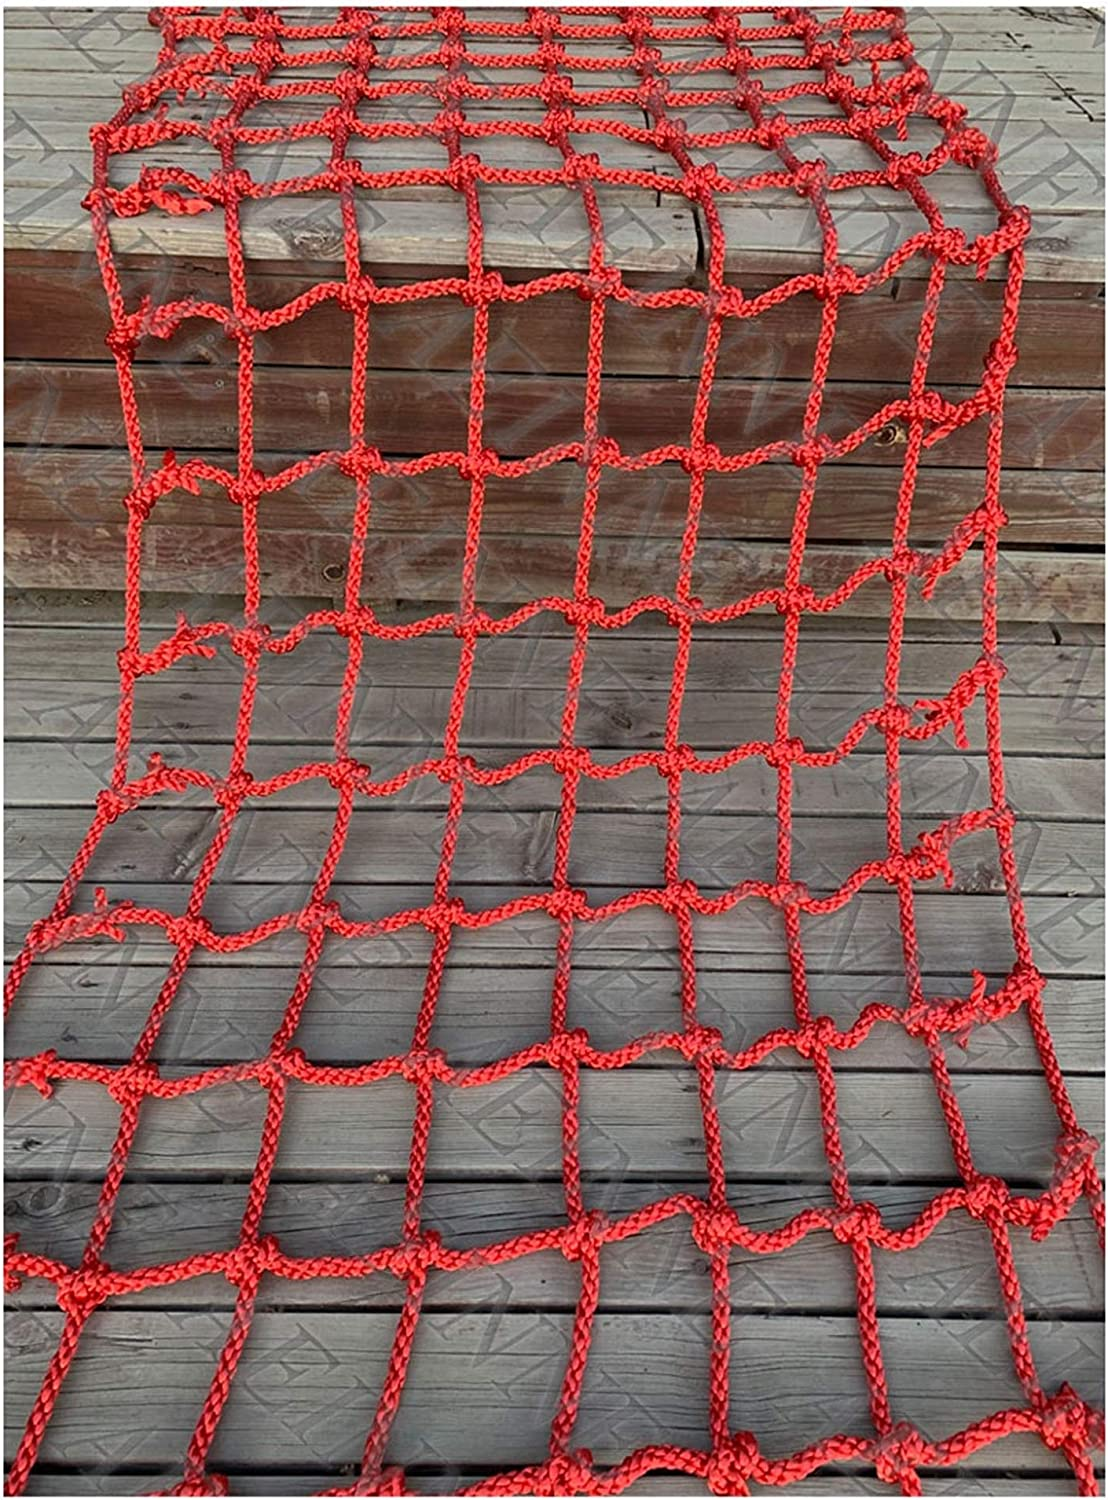 Rock Climbing Net Free Shipping Cheap Factory outlet Bargain Gift Safety Cargo Netting Playground R